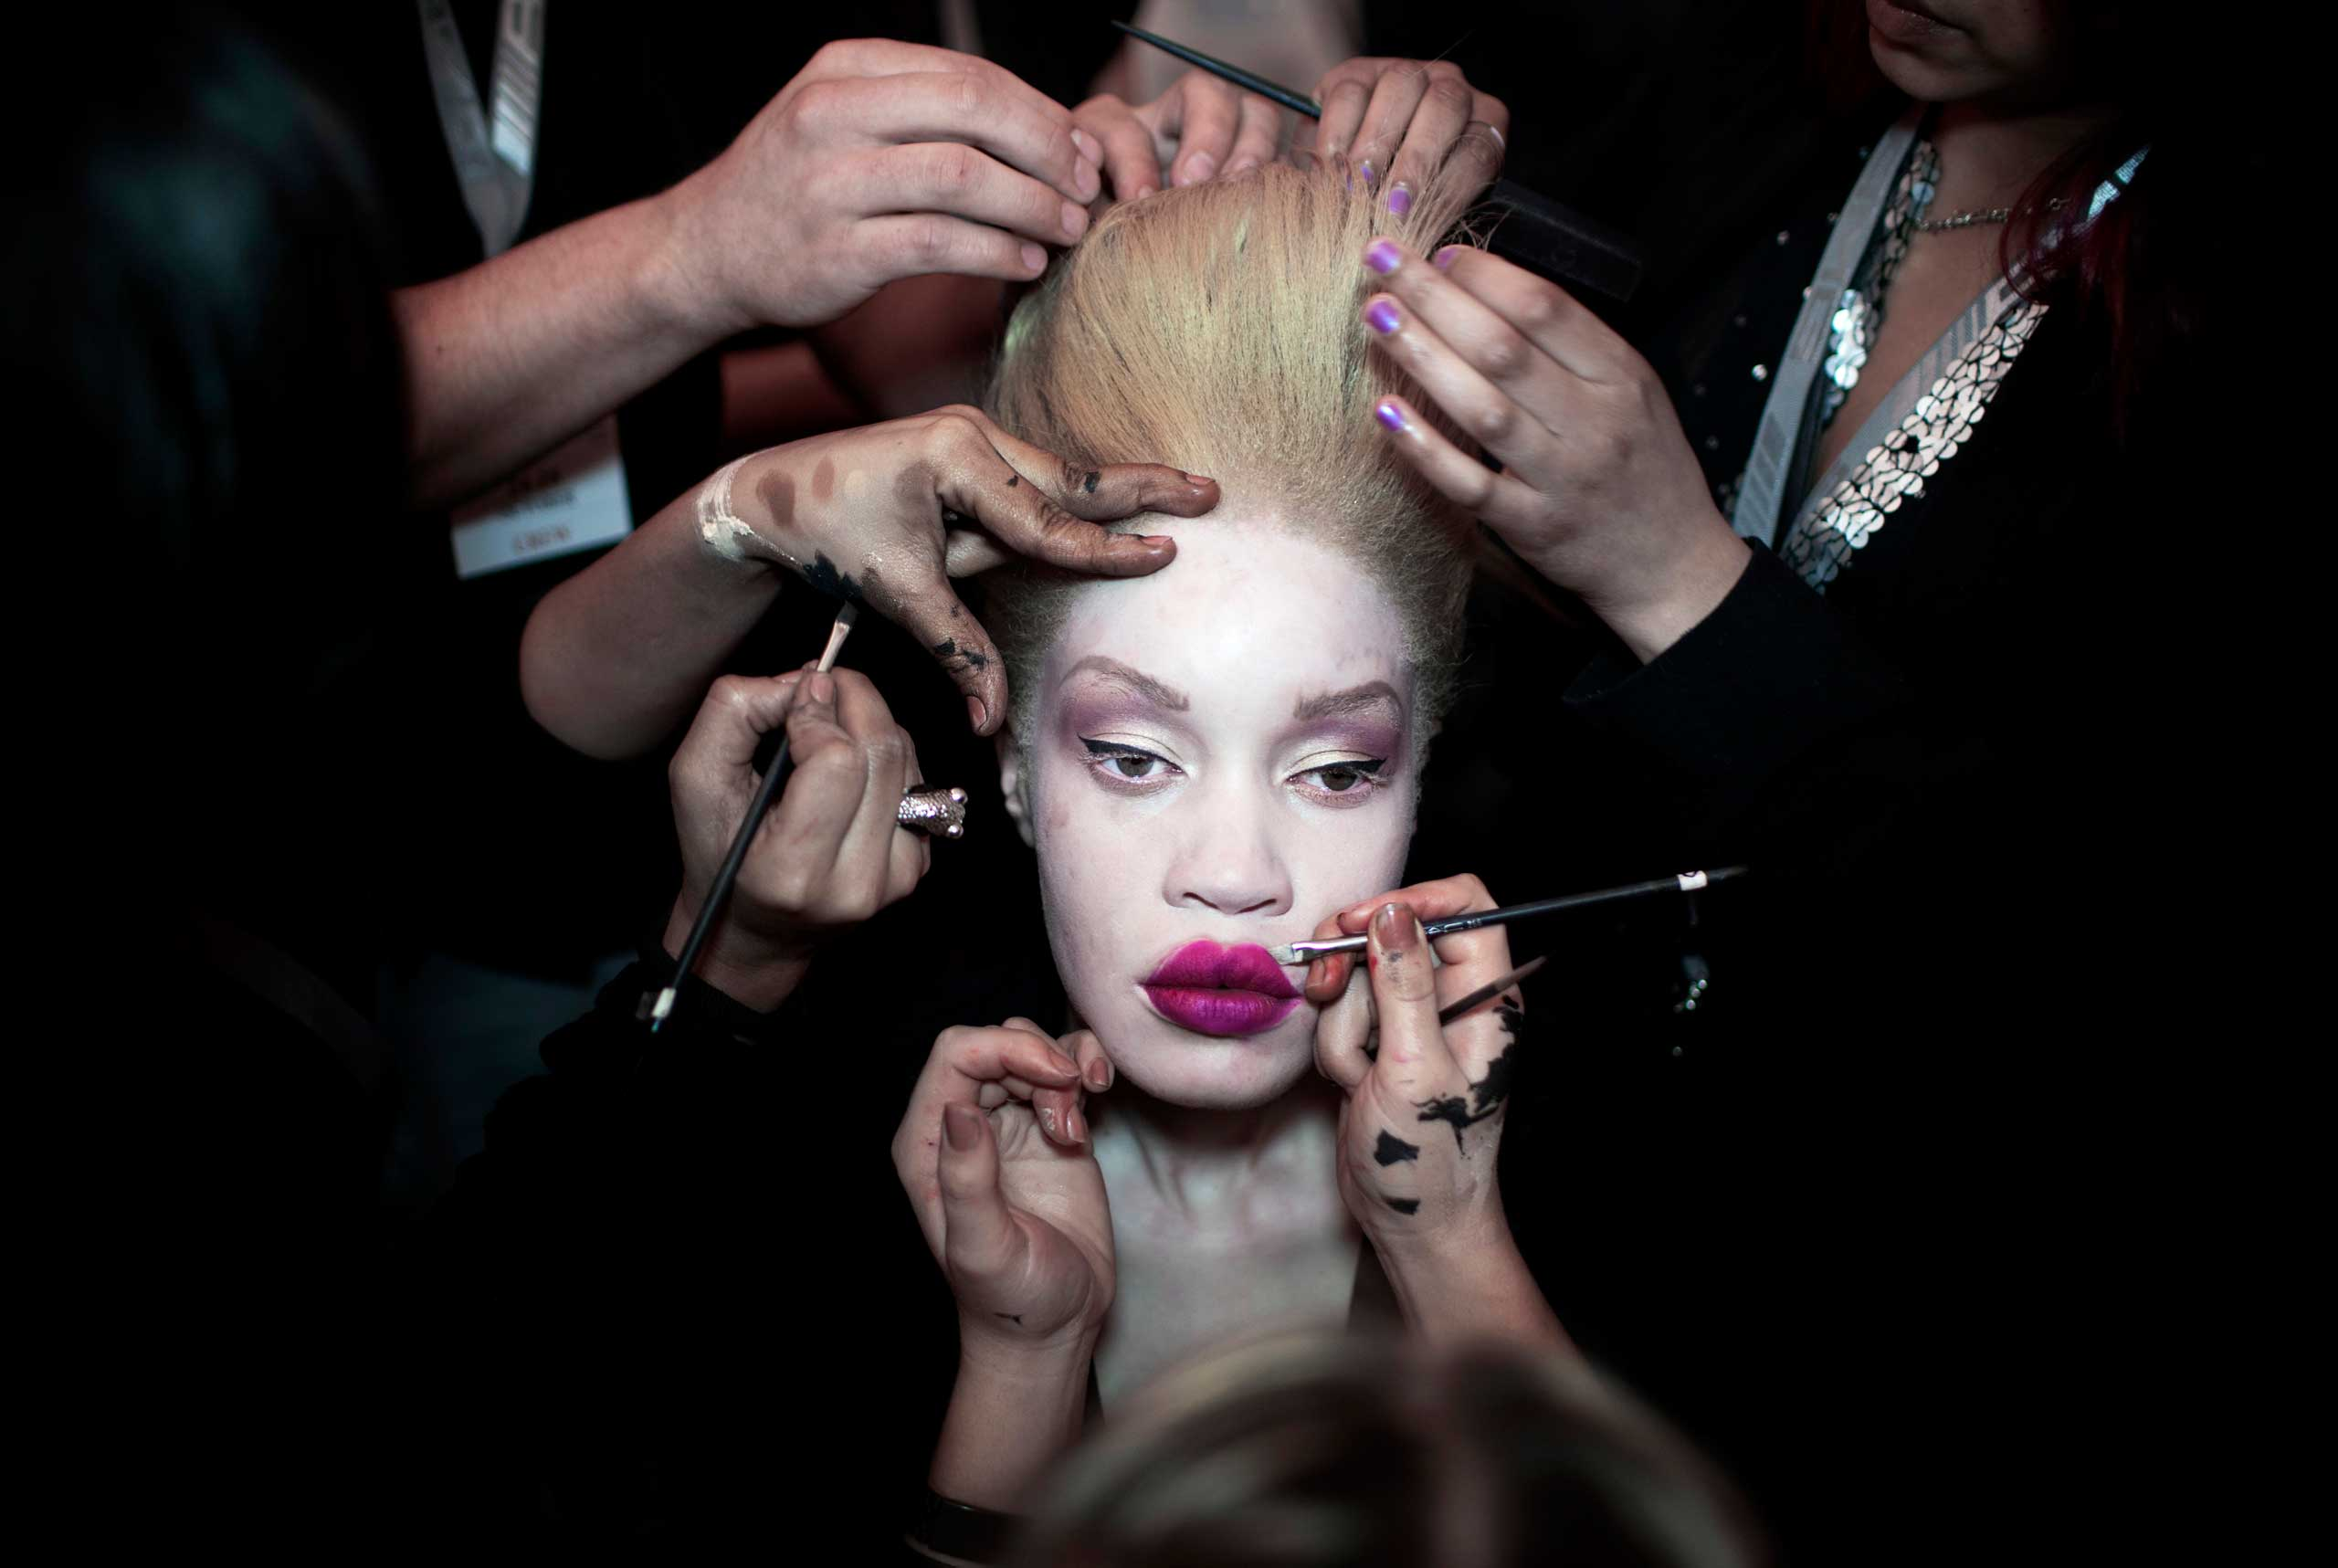 A fashion model has her makeup and hair done backstage before a show at Mercedes Benz Africa fashion week on Oct. 25, 2012 held in Johannesburg, South Africa.